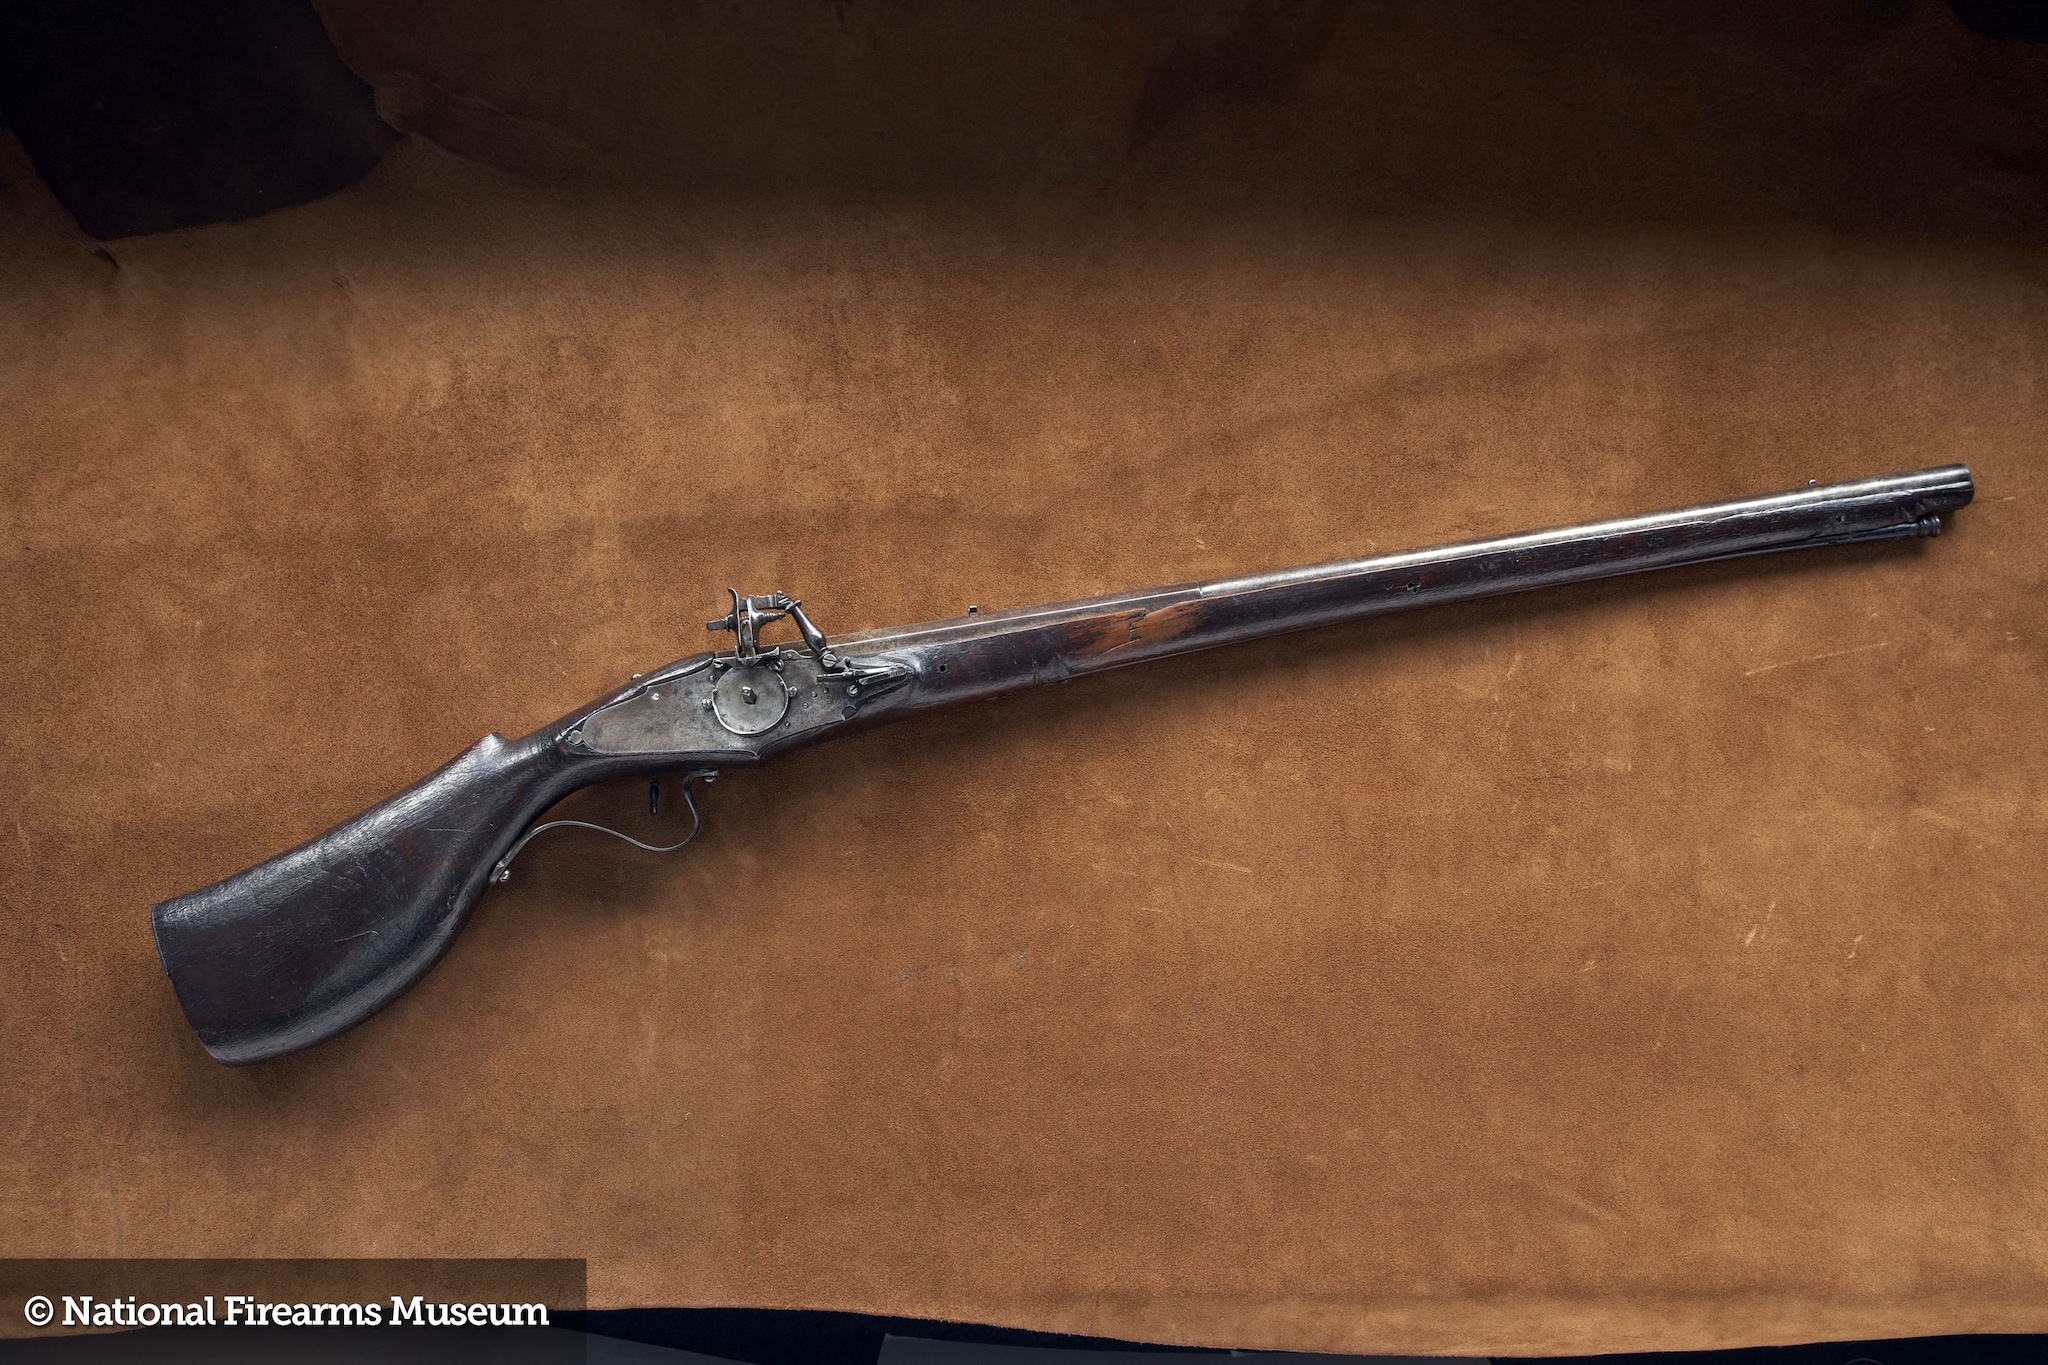 While it doesn't look like the blunderbuss guns cartoons would have you believe the Pilgrims used, this Italian-made wheellock was at Plymouth colony back in the day. (Photos: National Firearms Museum)